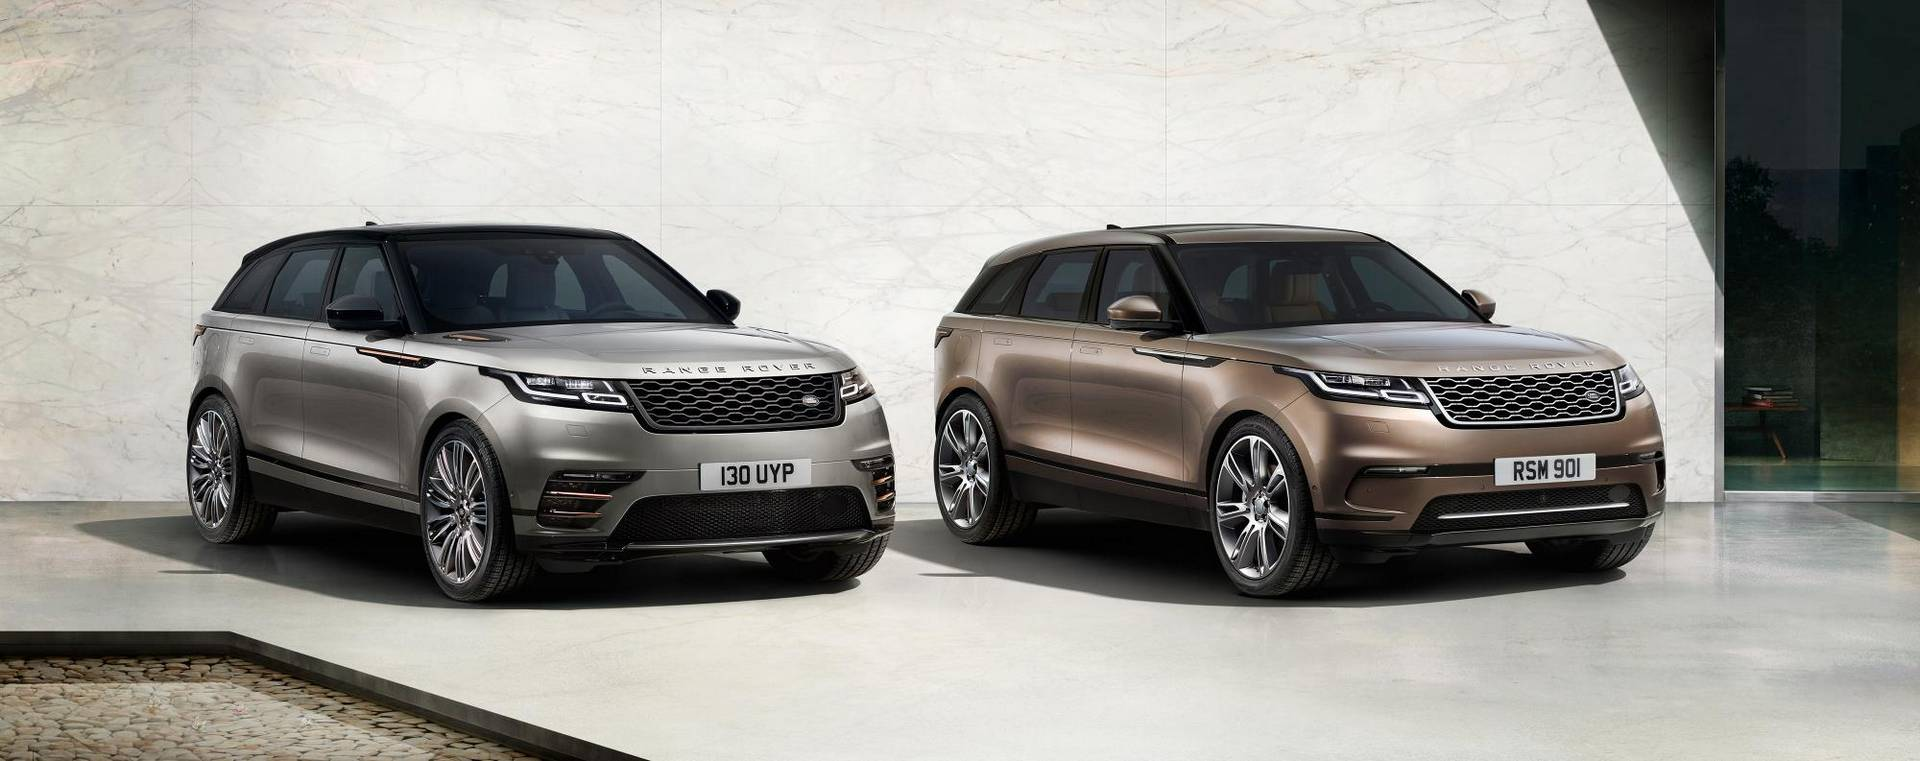 official 2018 range rover velar gtspirit. Black Bedroom Furniture Sets. Home Design Ideas